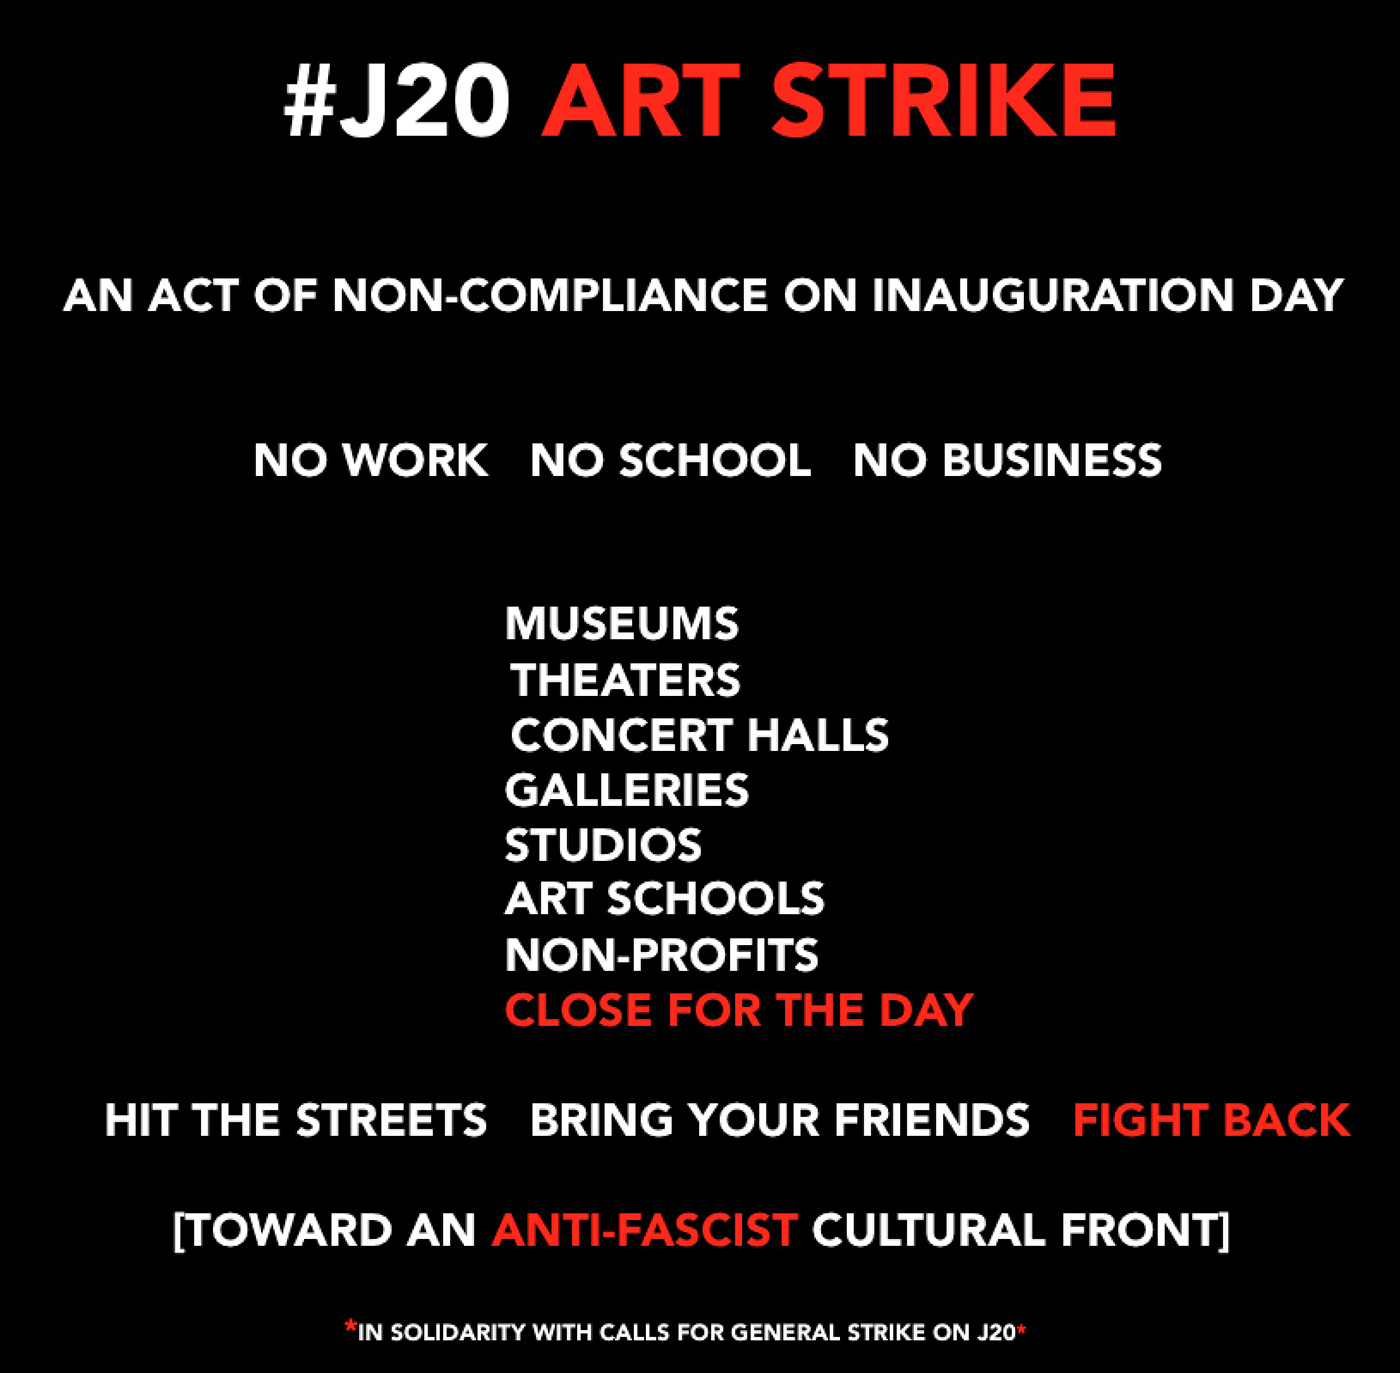 The #J20 Art Strike image circulating on social media